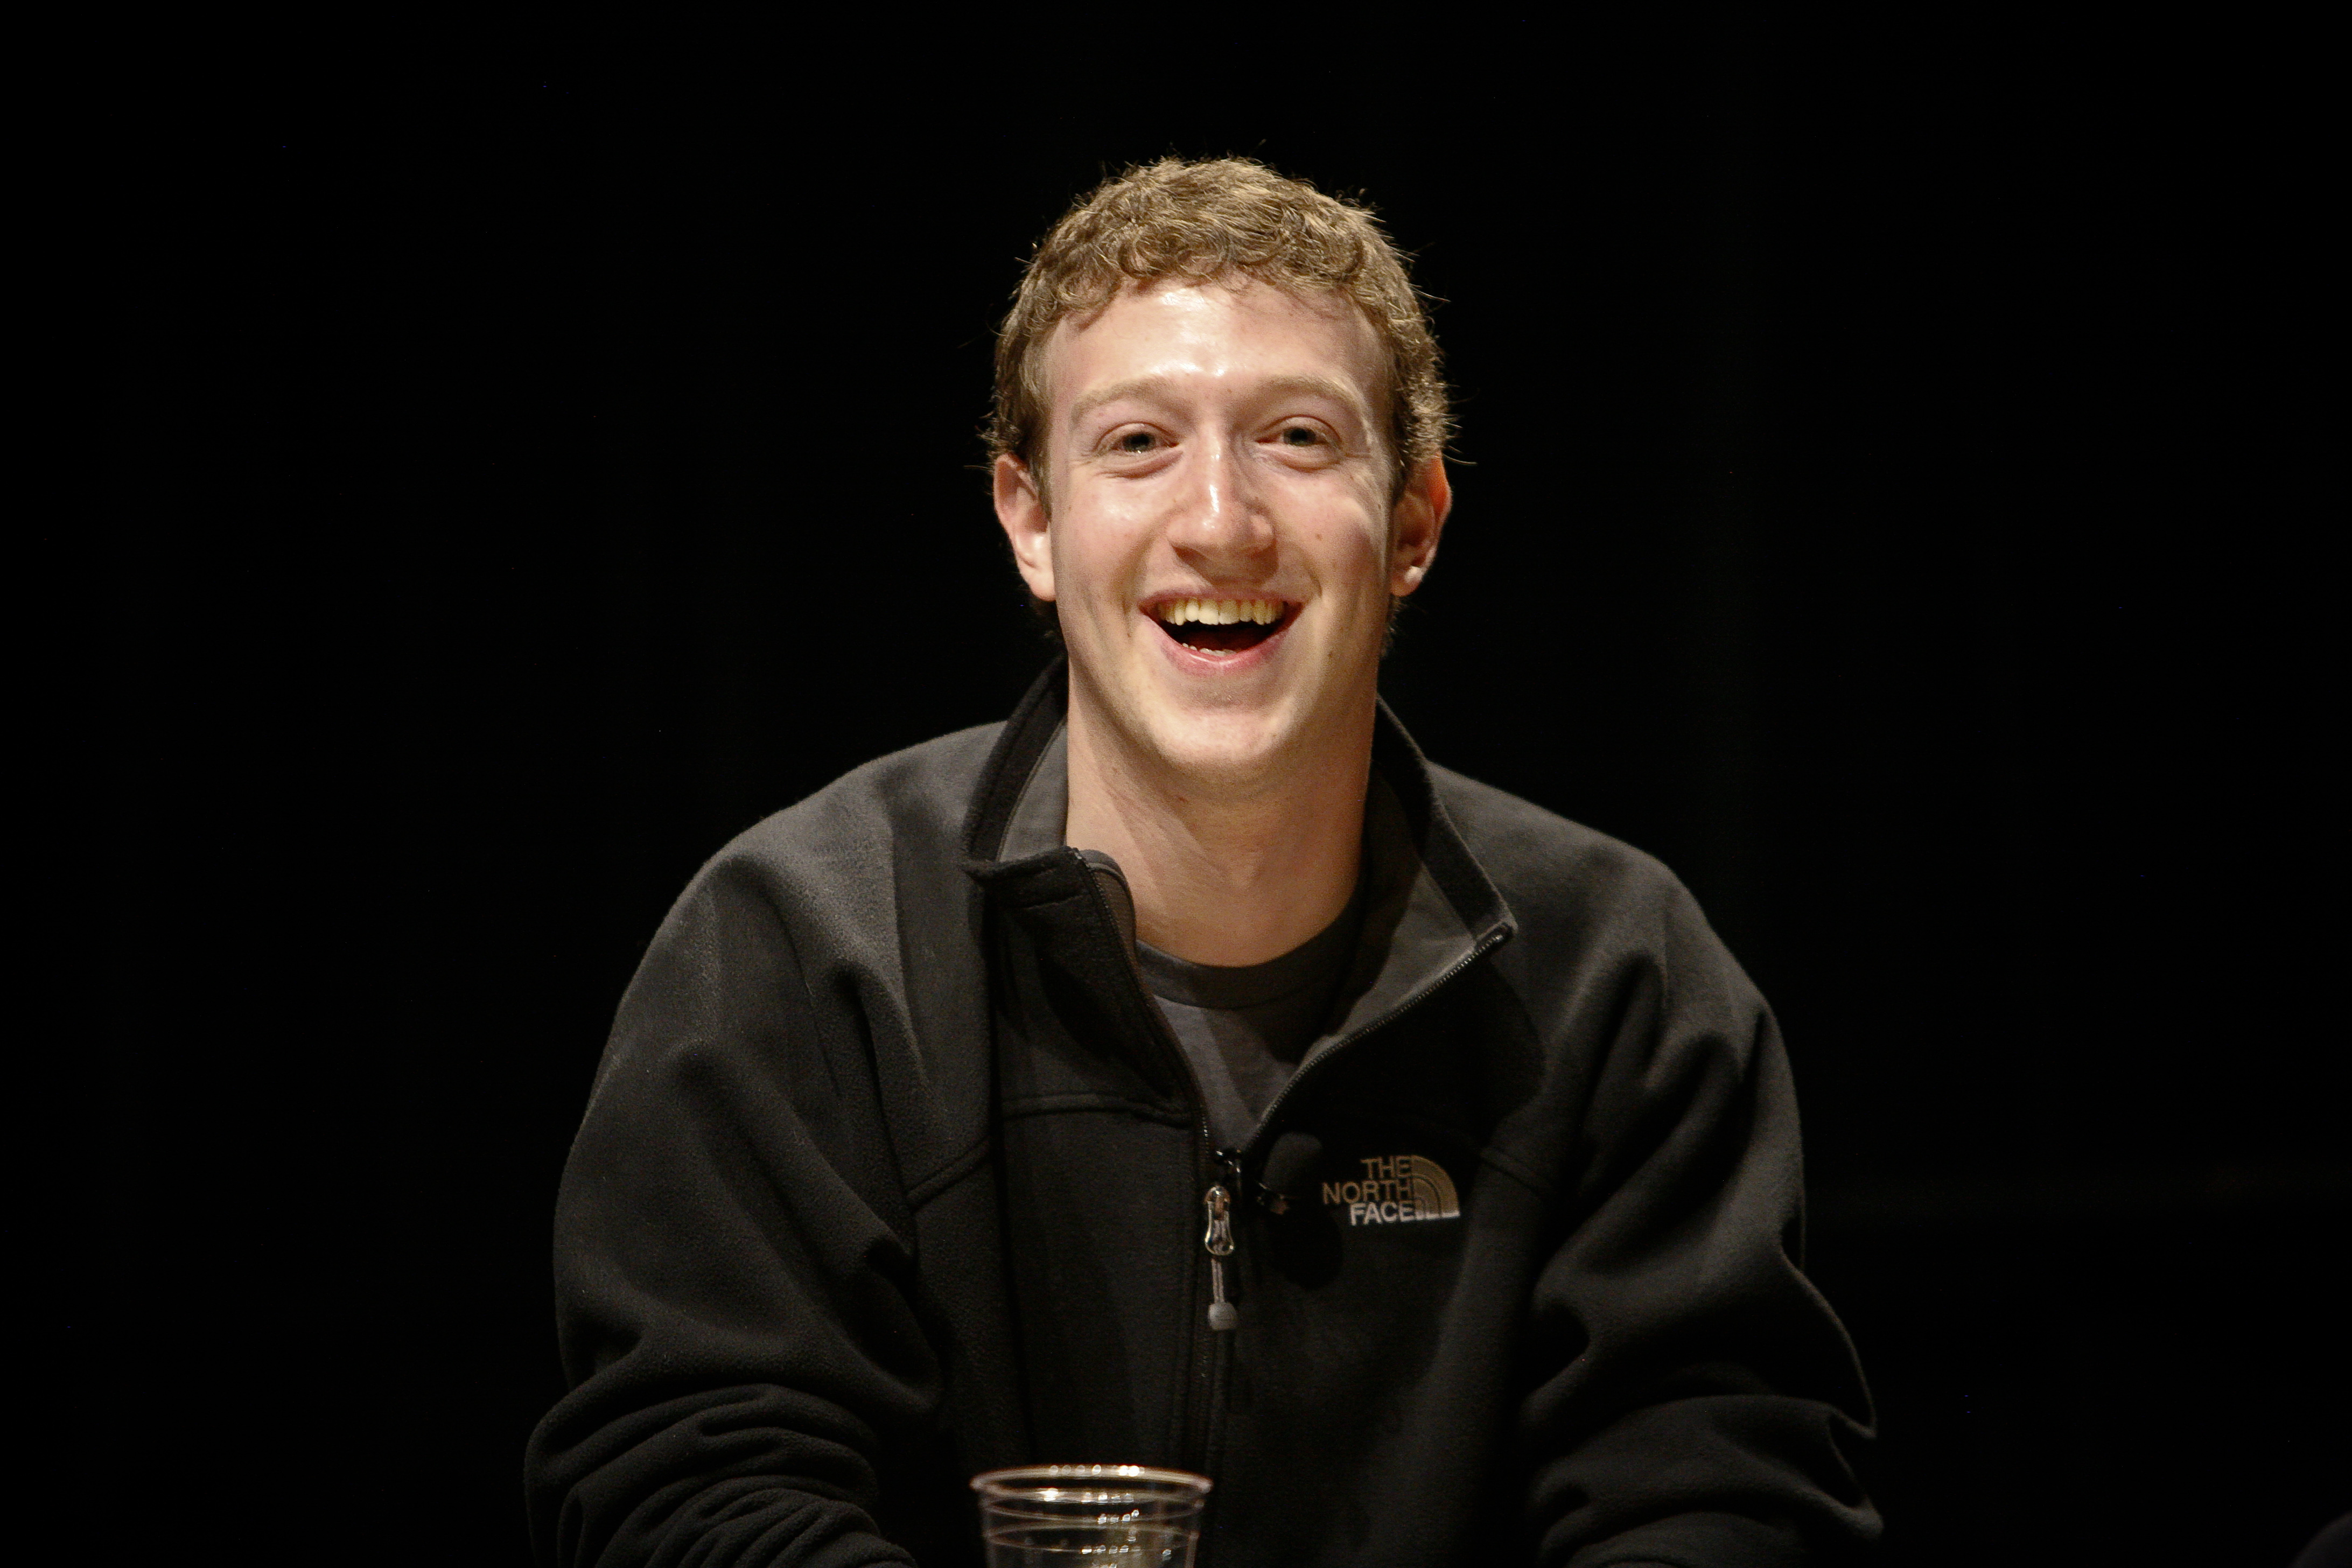 mark zuckerberg widescreen wallpaper 59727